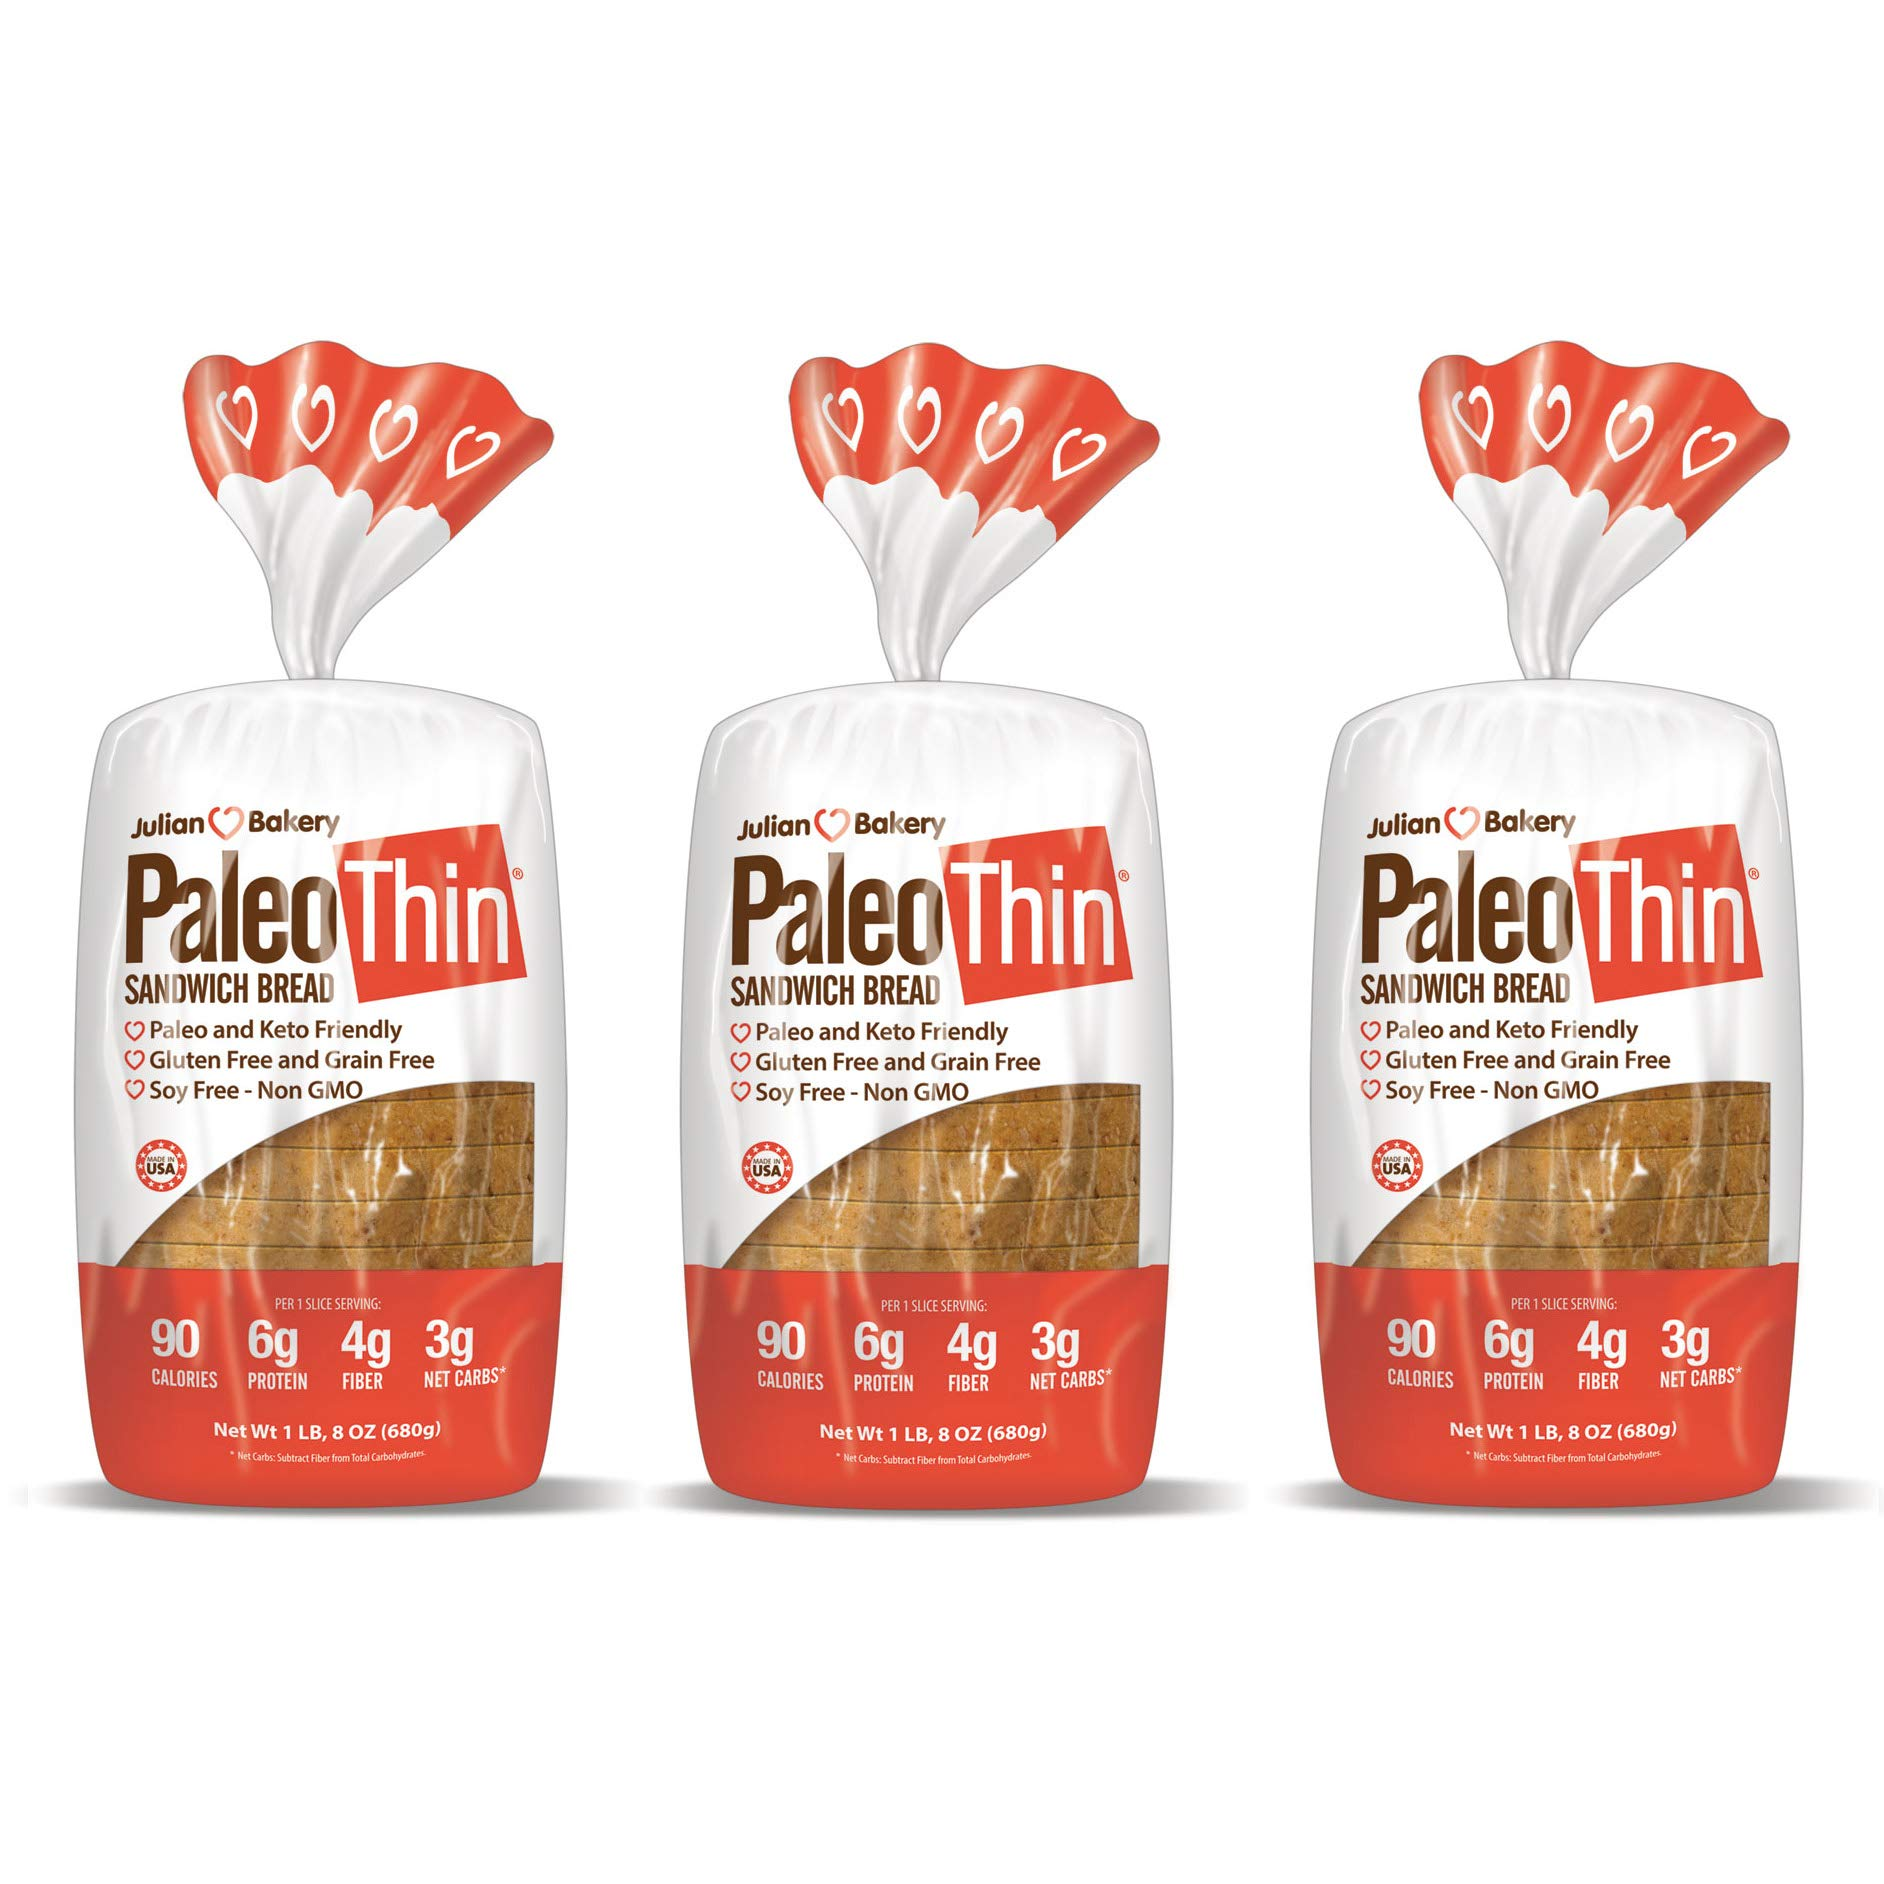 Paleo Thin Sandwich Bread (New) Gluten-Free Low Carb (3 Net Carbs) 6g Protein (16 Slices 1.5 Lbs) (3 Pack) by Julian Bakery